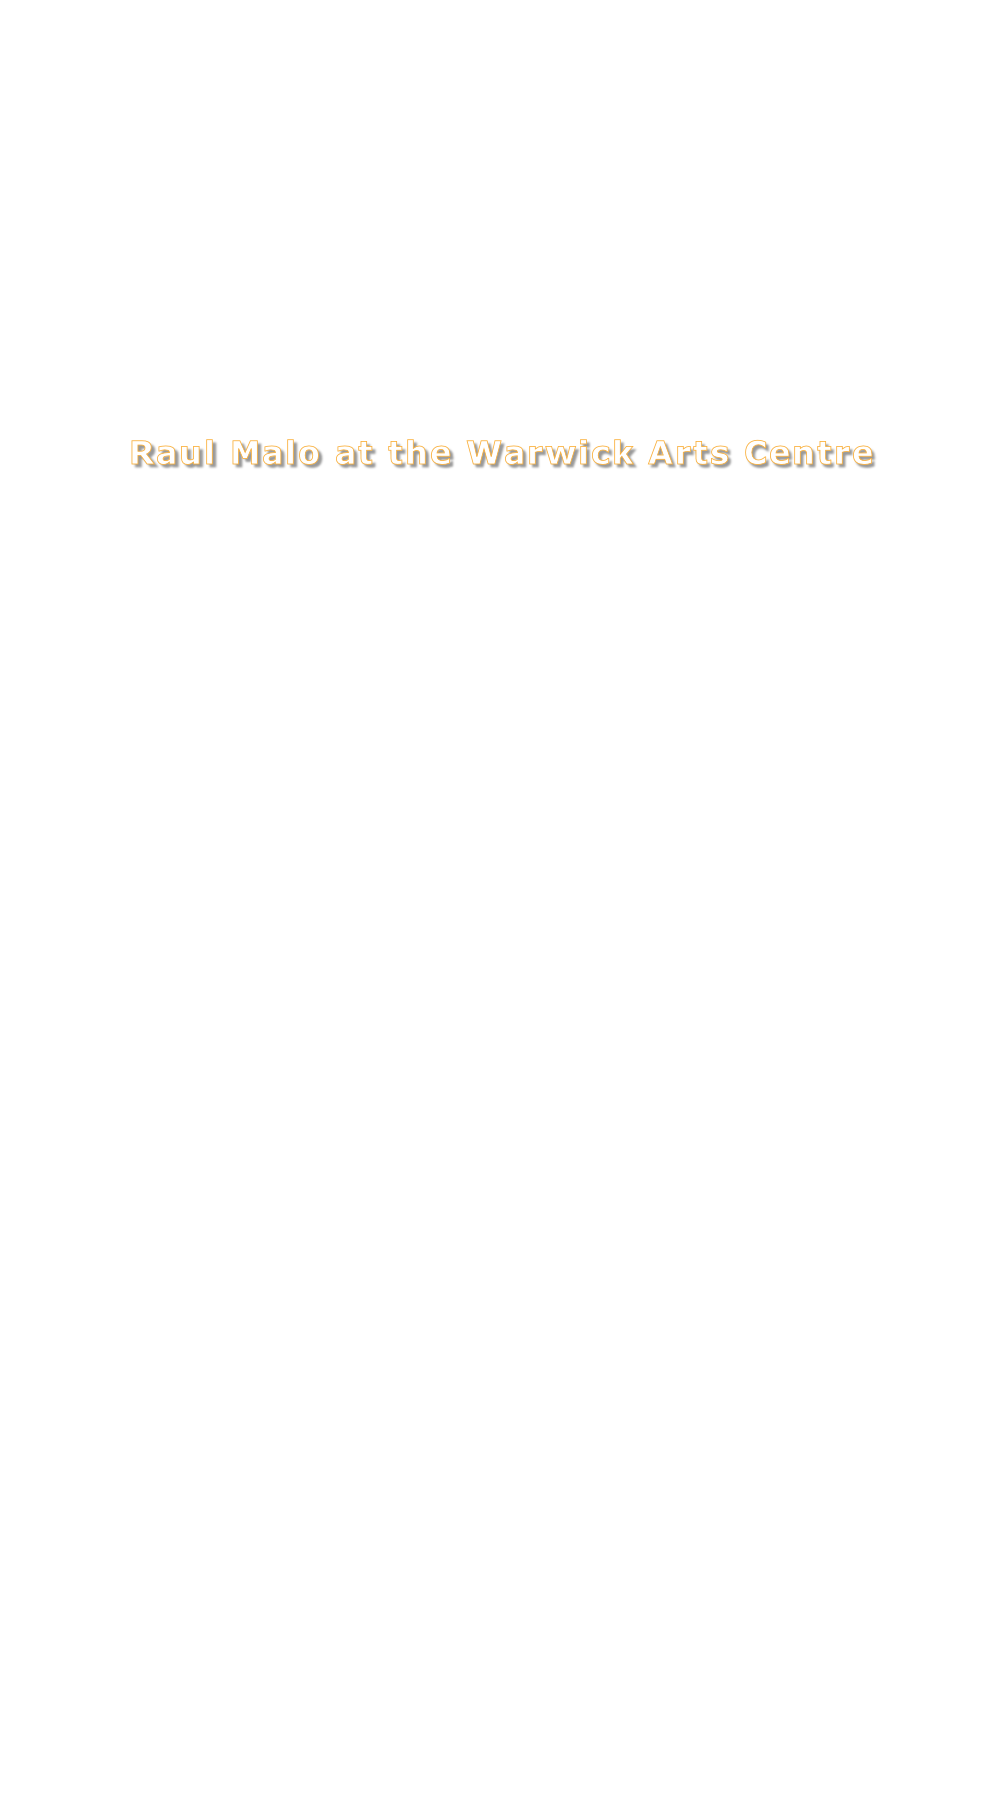 Raul Malo at the Warwick Arts Centre